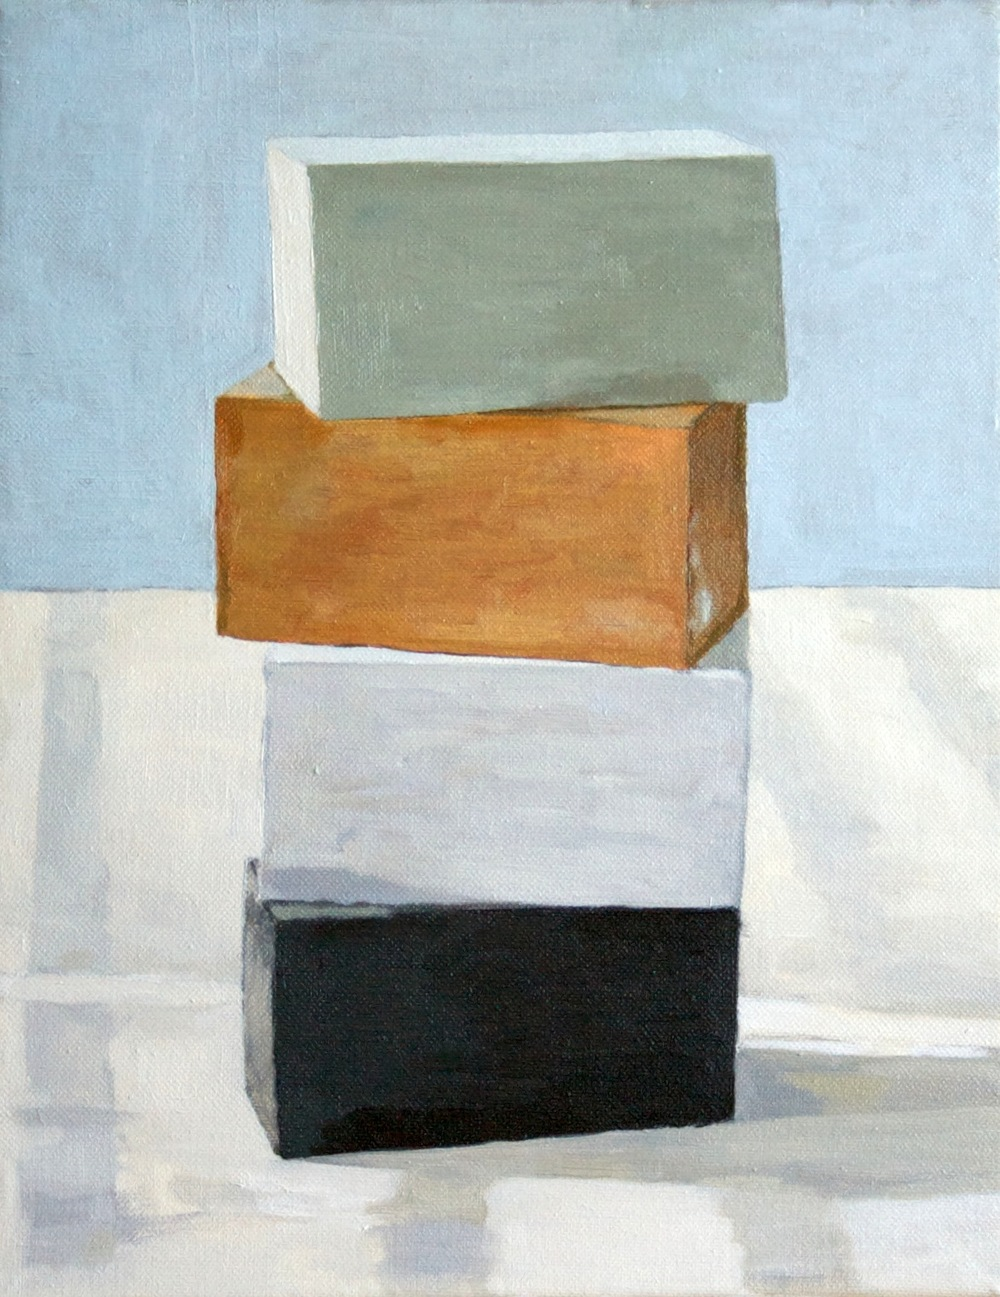 Blind Stack, 2011 Oil on canvas, 14 x 11 inches